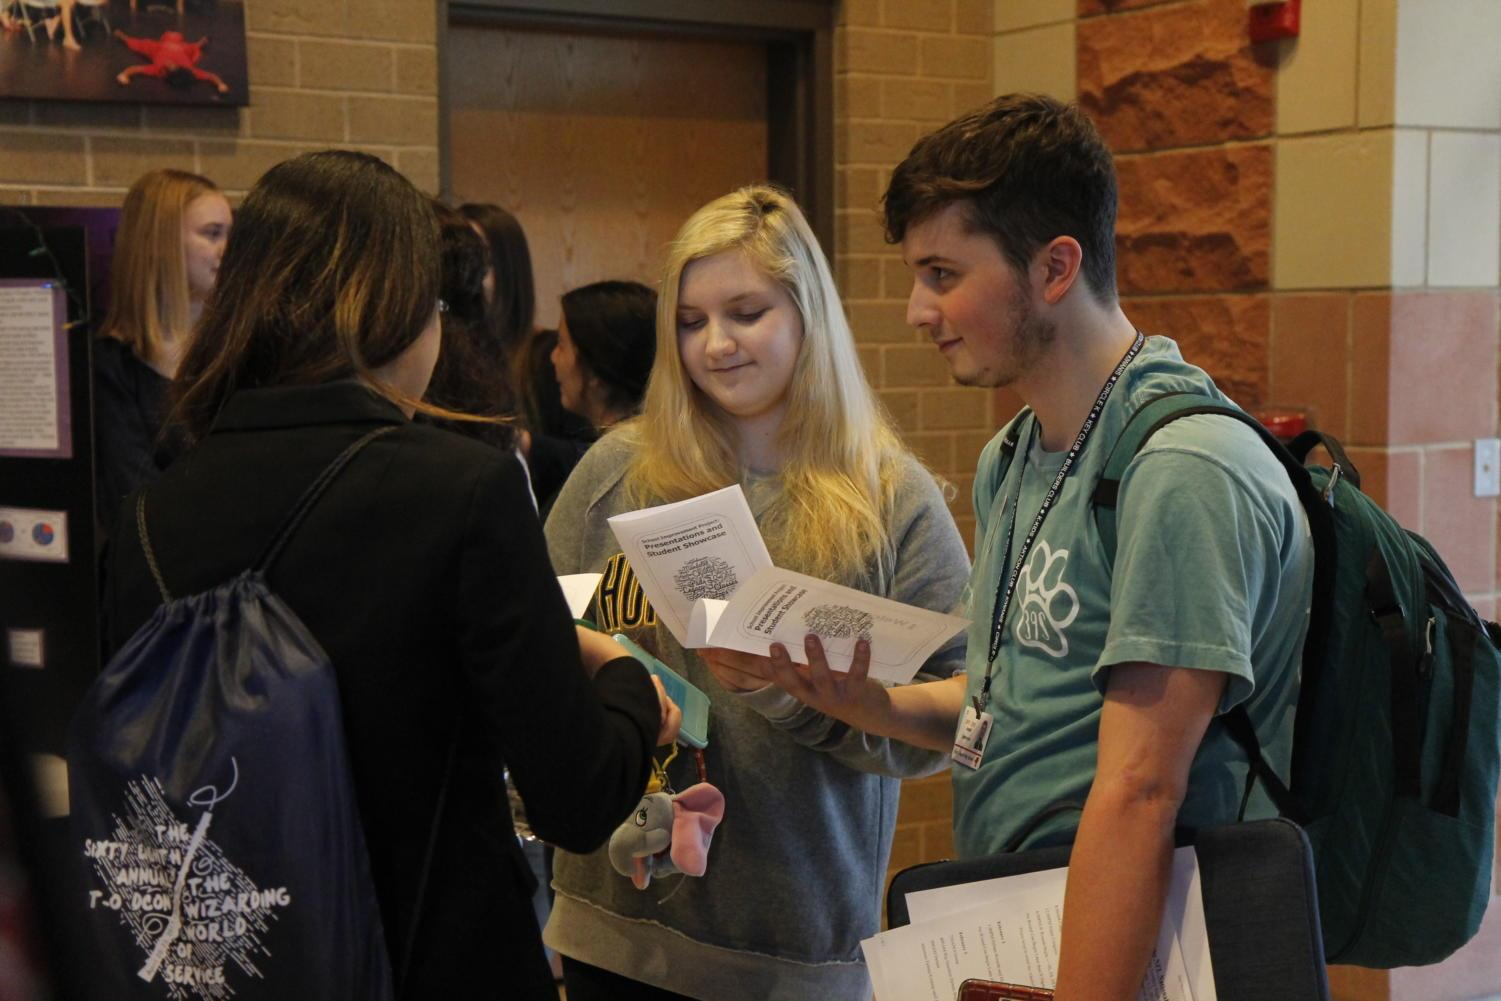 Senior Joseph Castronovo and sophomore Kaitlyn Pasierb discuss the AP English III presentations after the event.